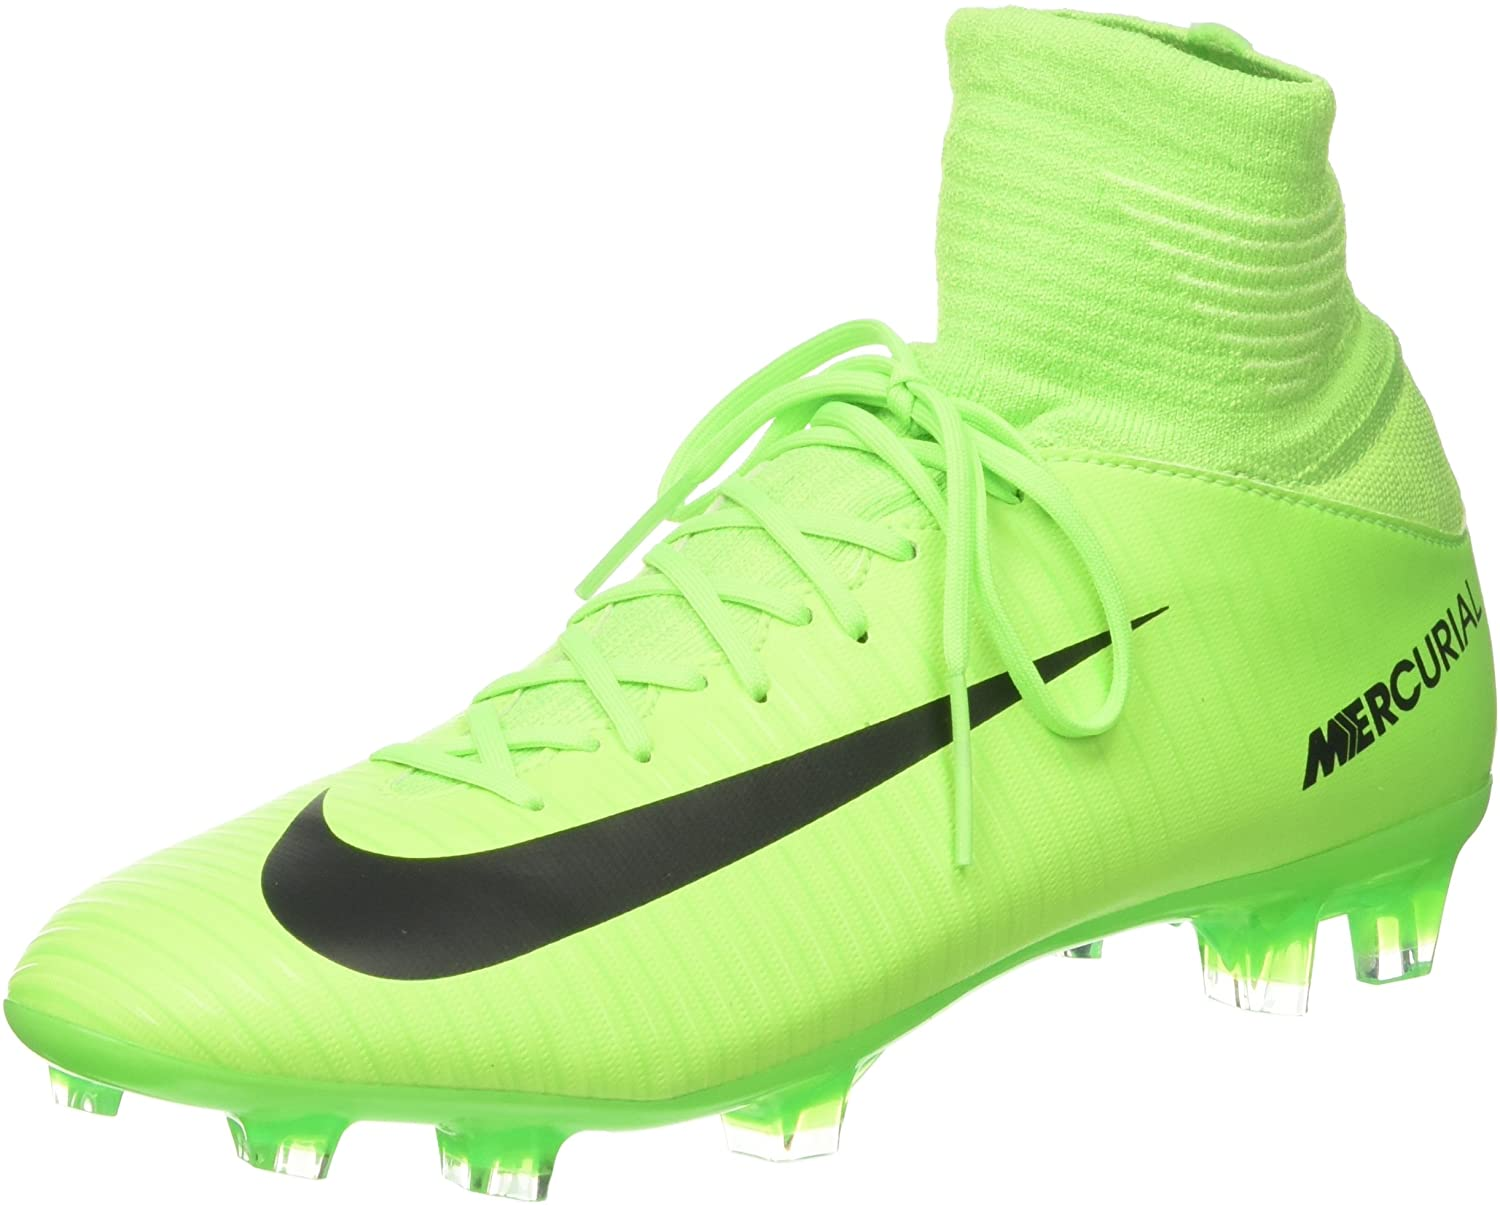 Nike Youth Mercurial Superfly V FG Cleats